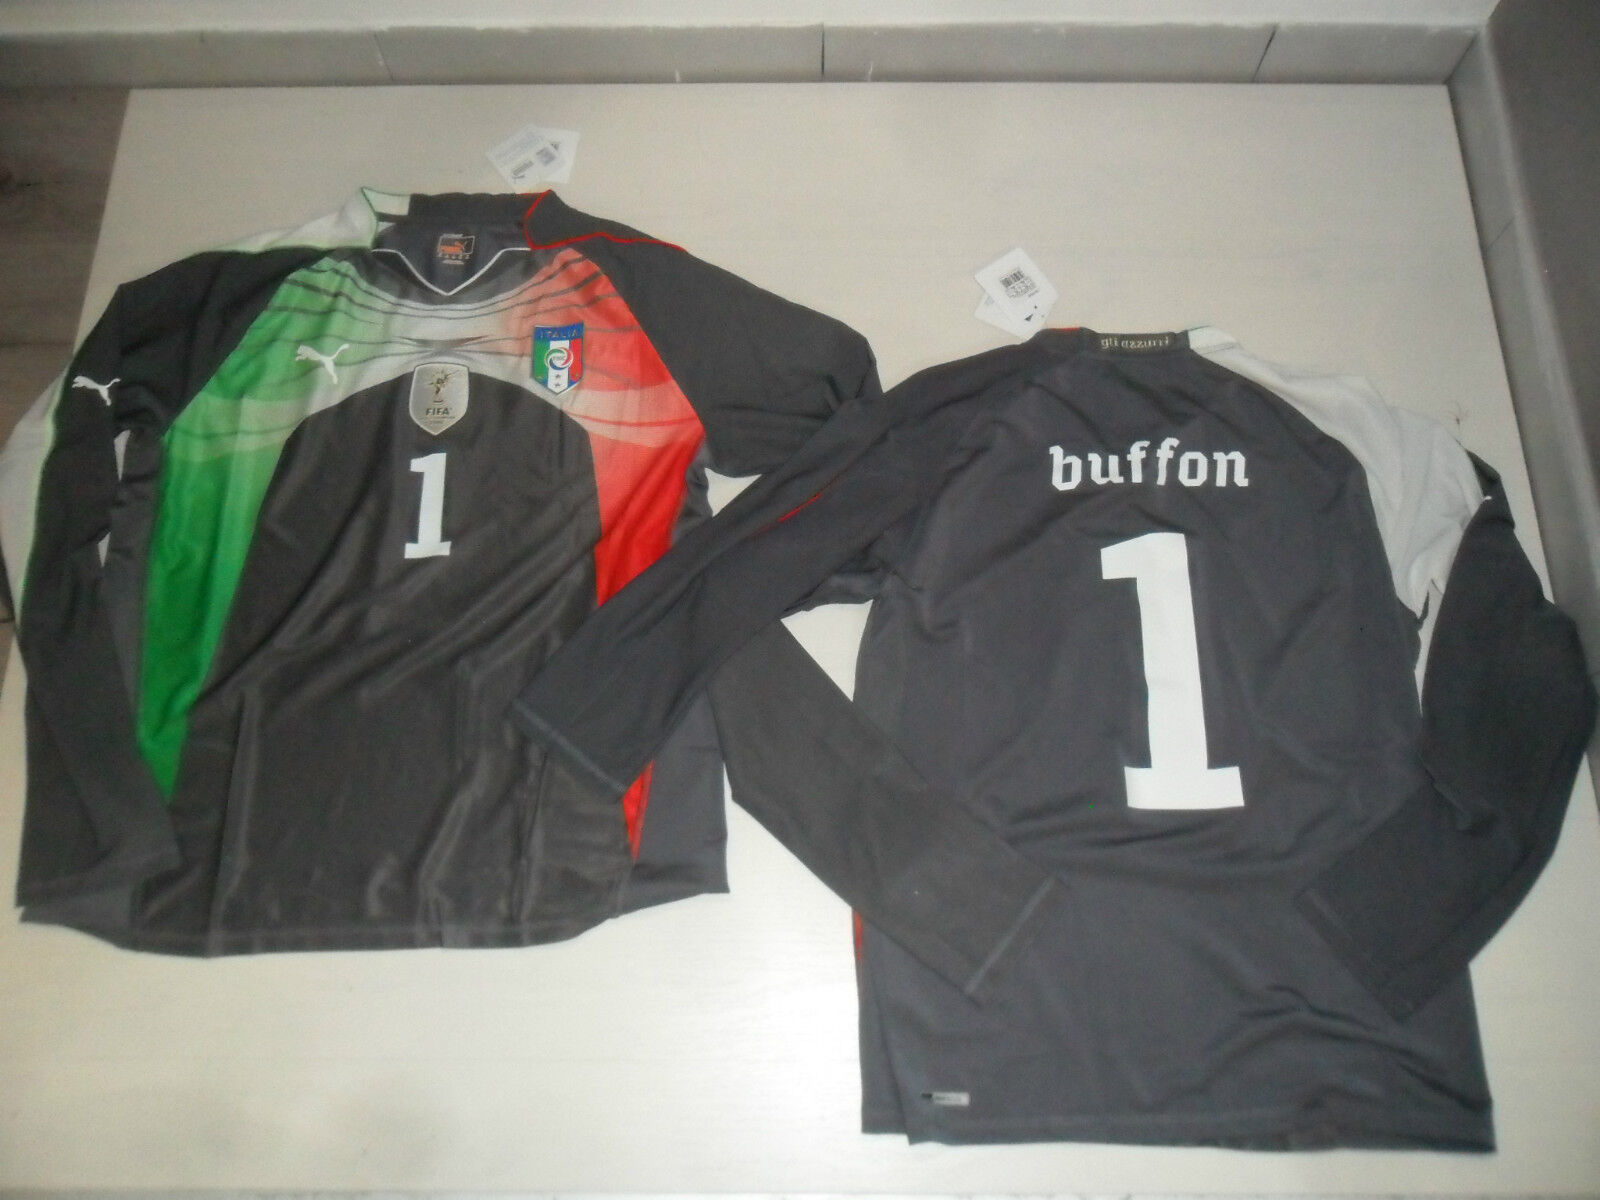 2574 PUMA ITALY AUTHENTIC SHIRT JERSEY LONG SLEEVE BUFFON ITALIA MAGLIA PORTIERE